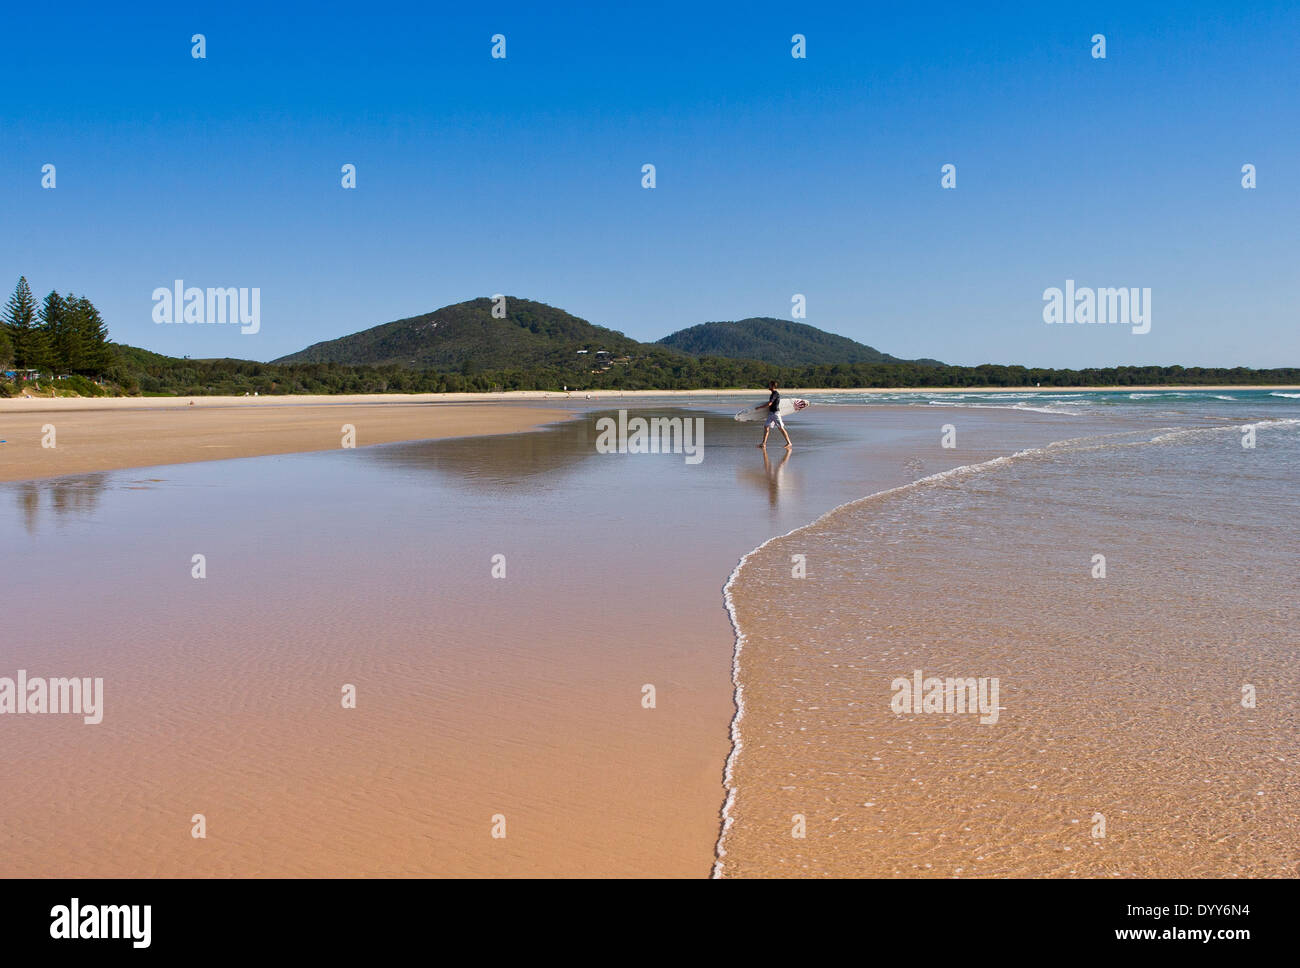 low angle view across tidal flats at the beach edge with gentle wave, surfer walking on beach, and distant hills, on sunny day - Stock Image